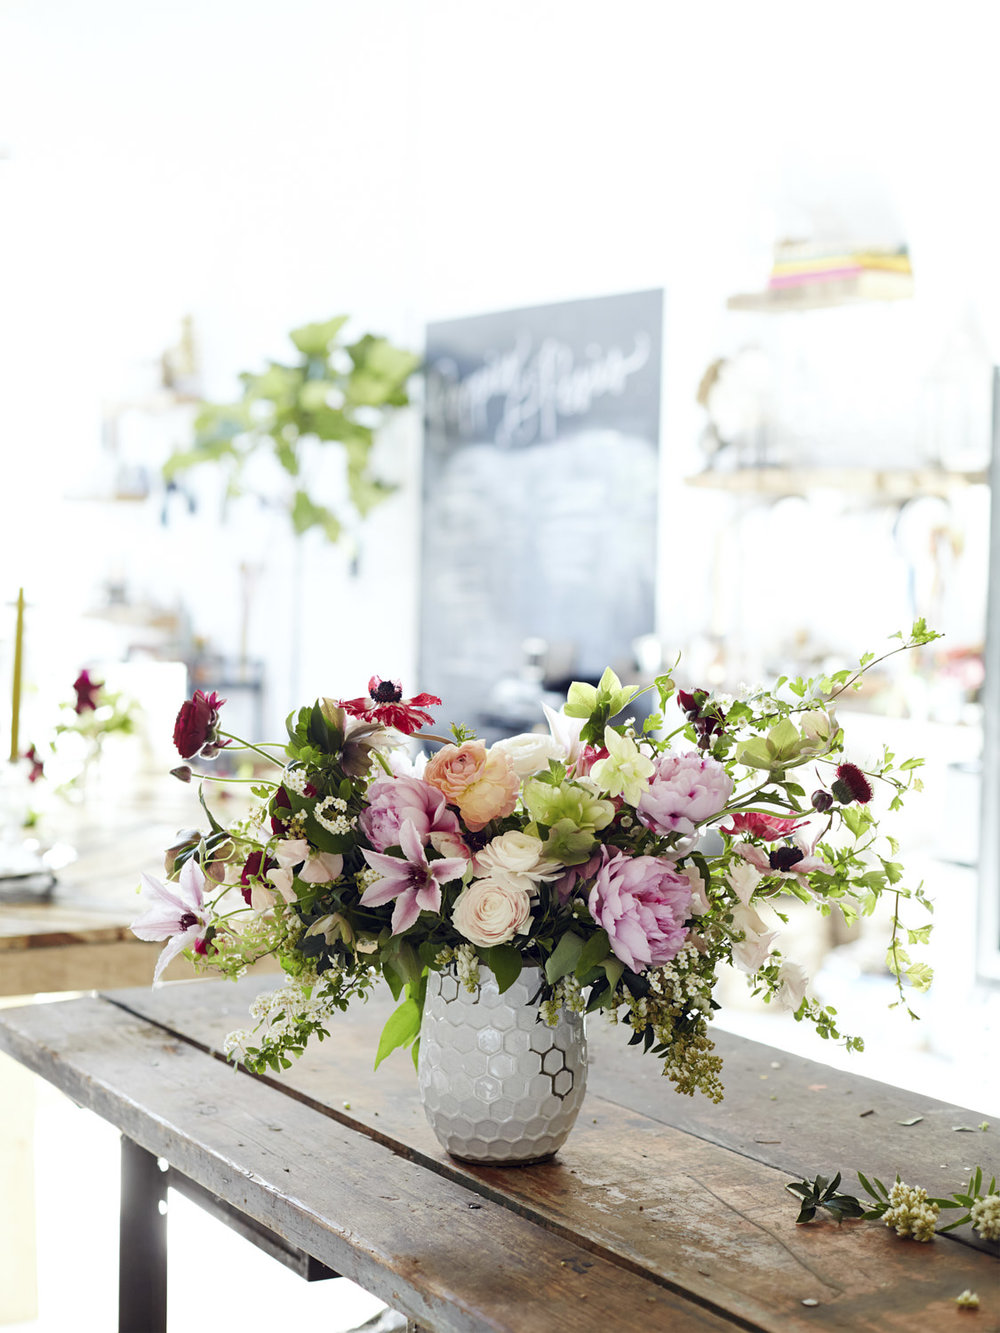 Poppies & Posies/West Elm